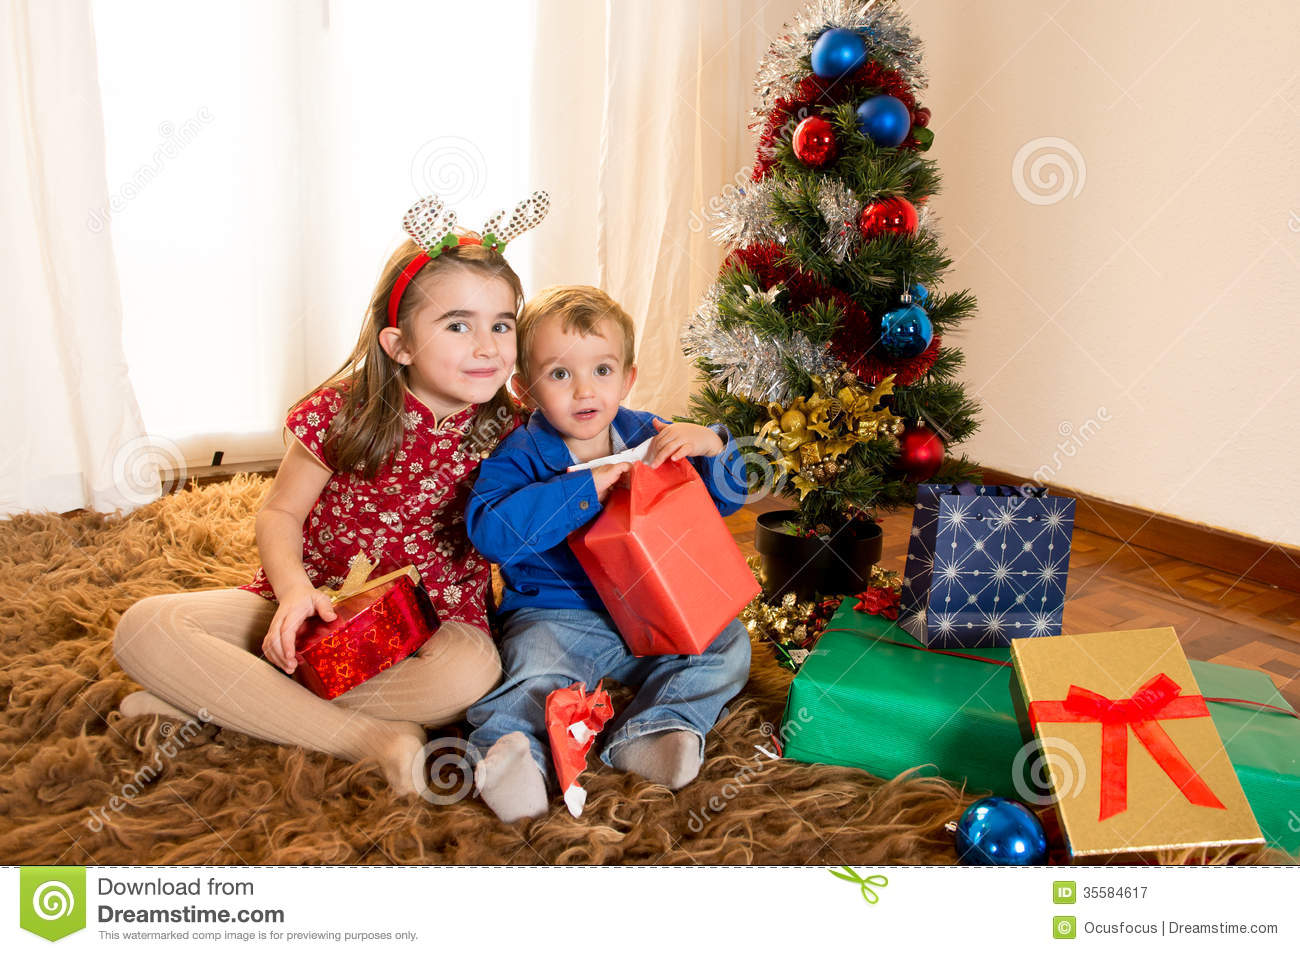 Little Kids On Rug Opening Christmas Presents Royalty Free Stock ...